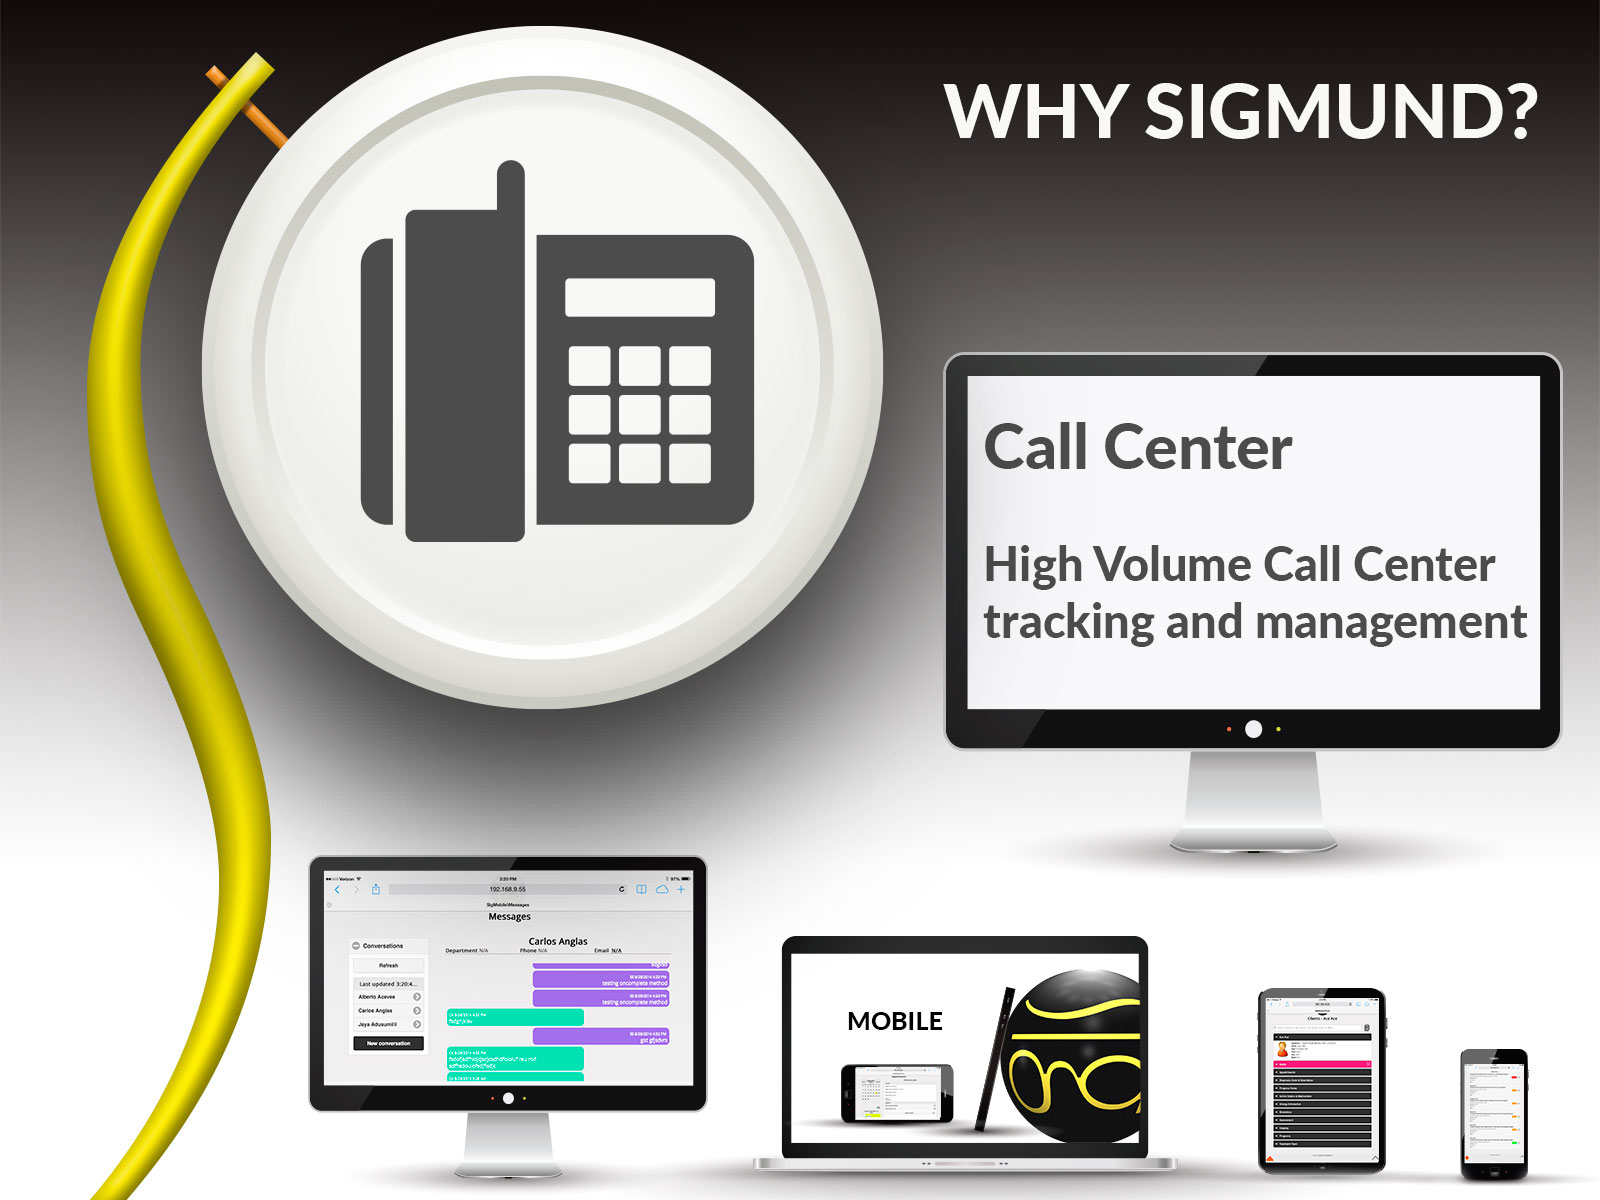 Call Center feature